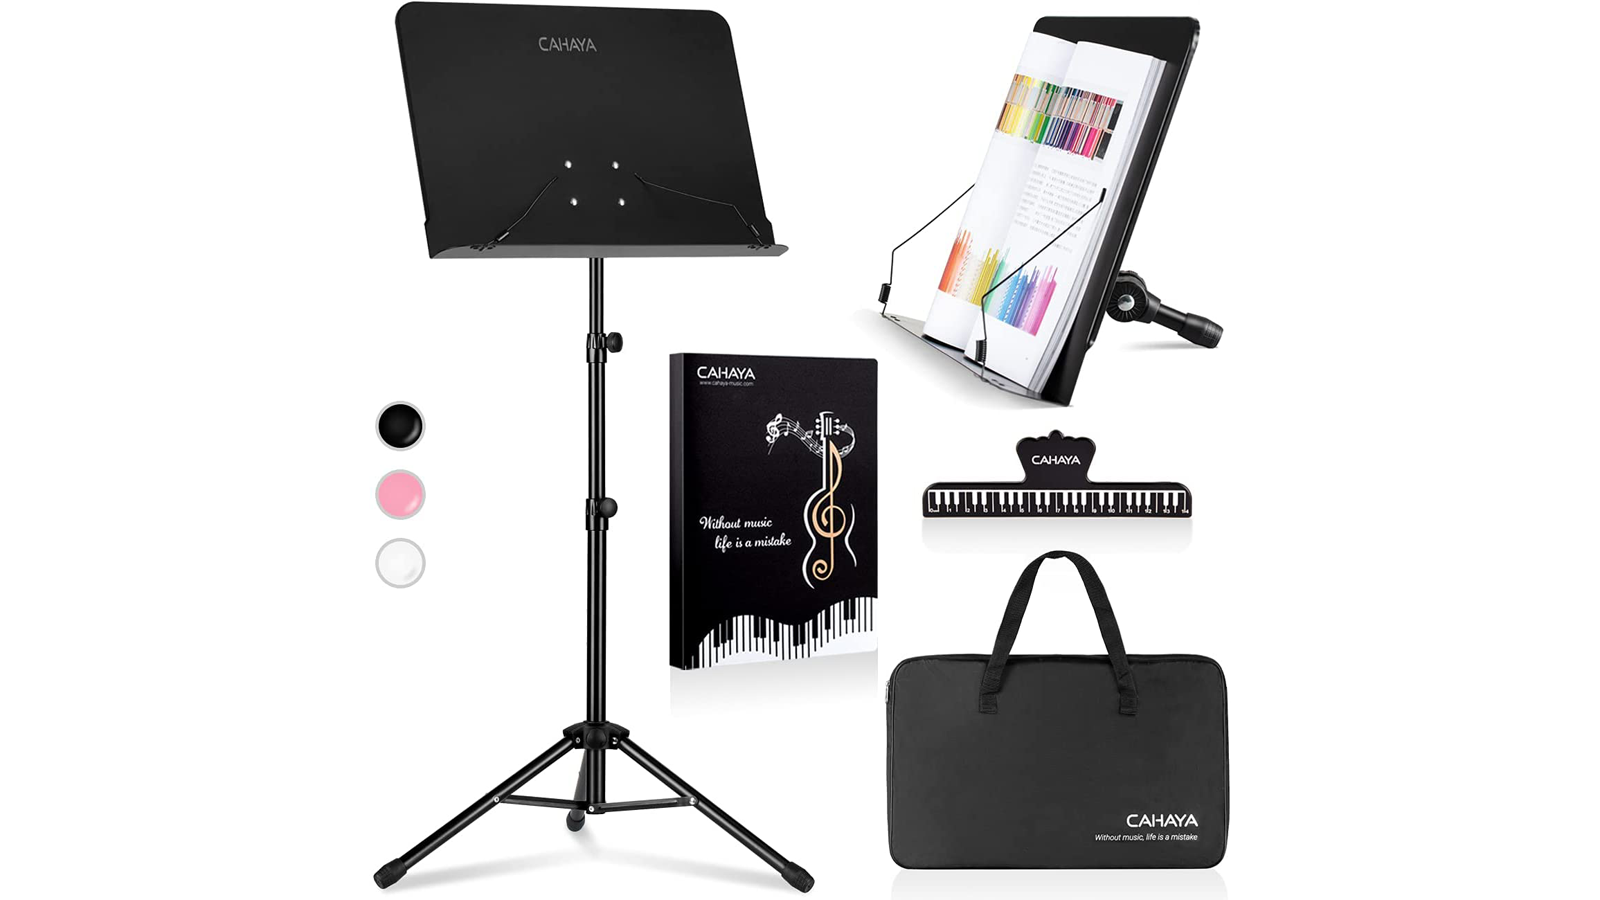 With This Portable 4-in-1 Stand, You Can Easily View Books, Sheet Music, and More